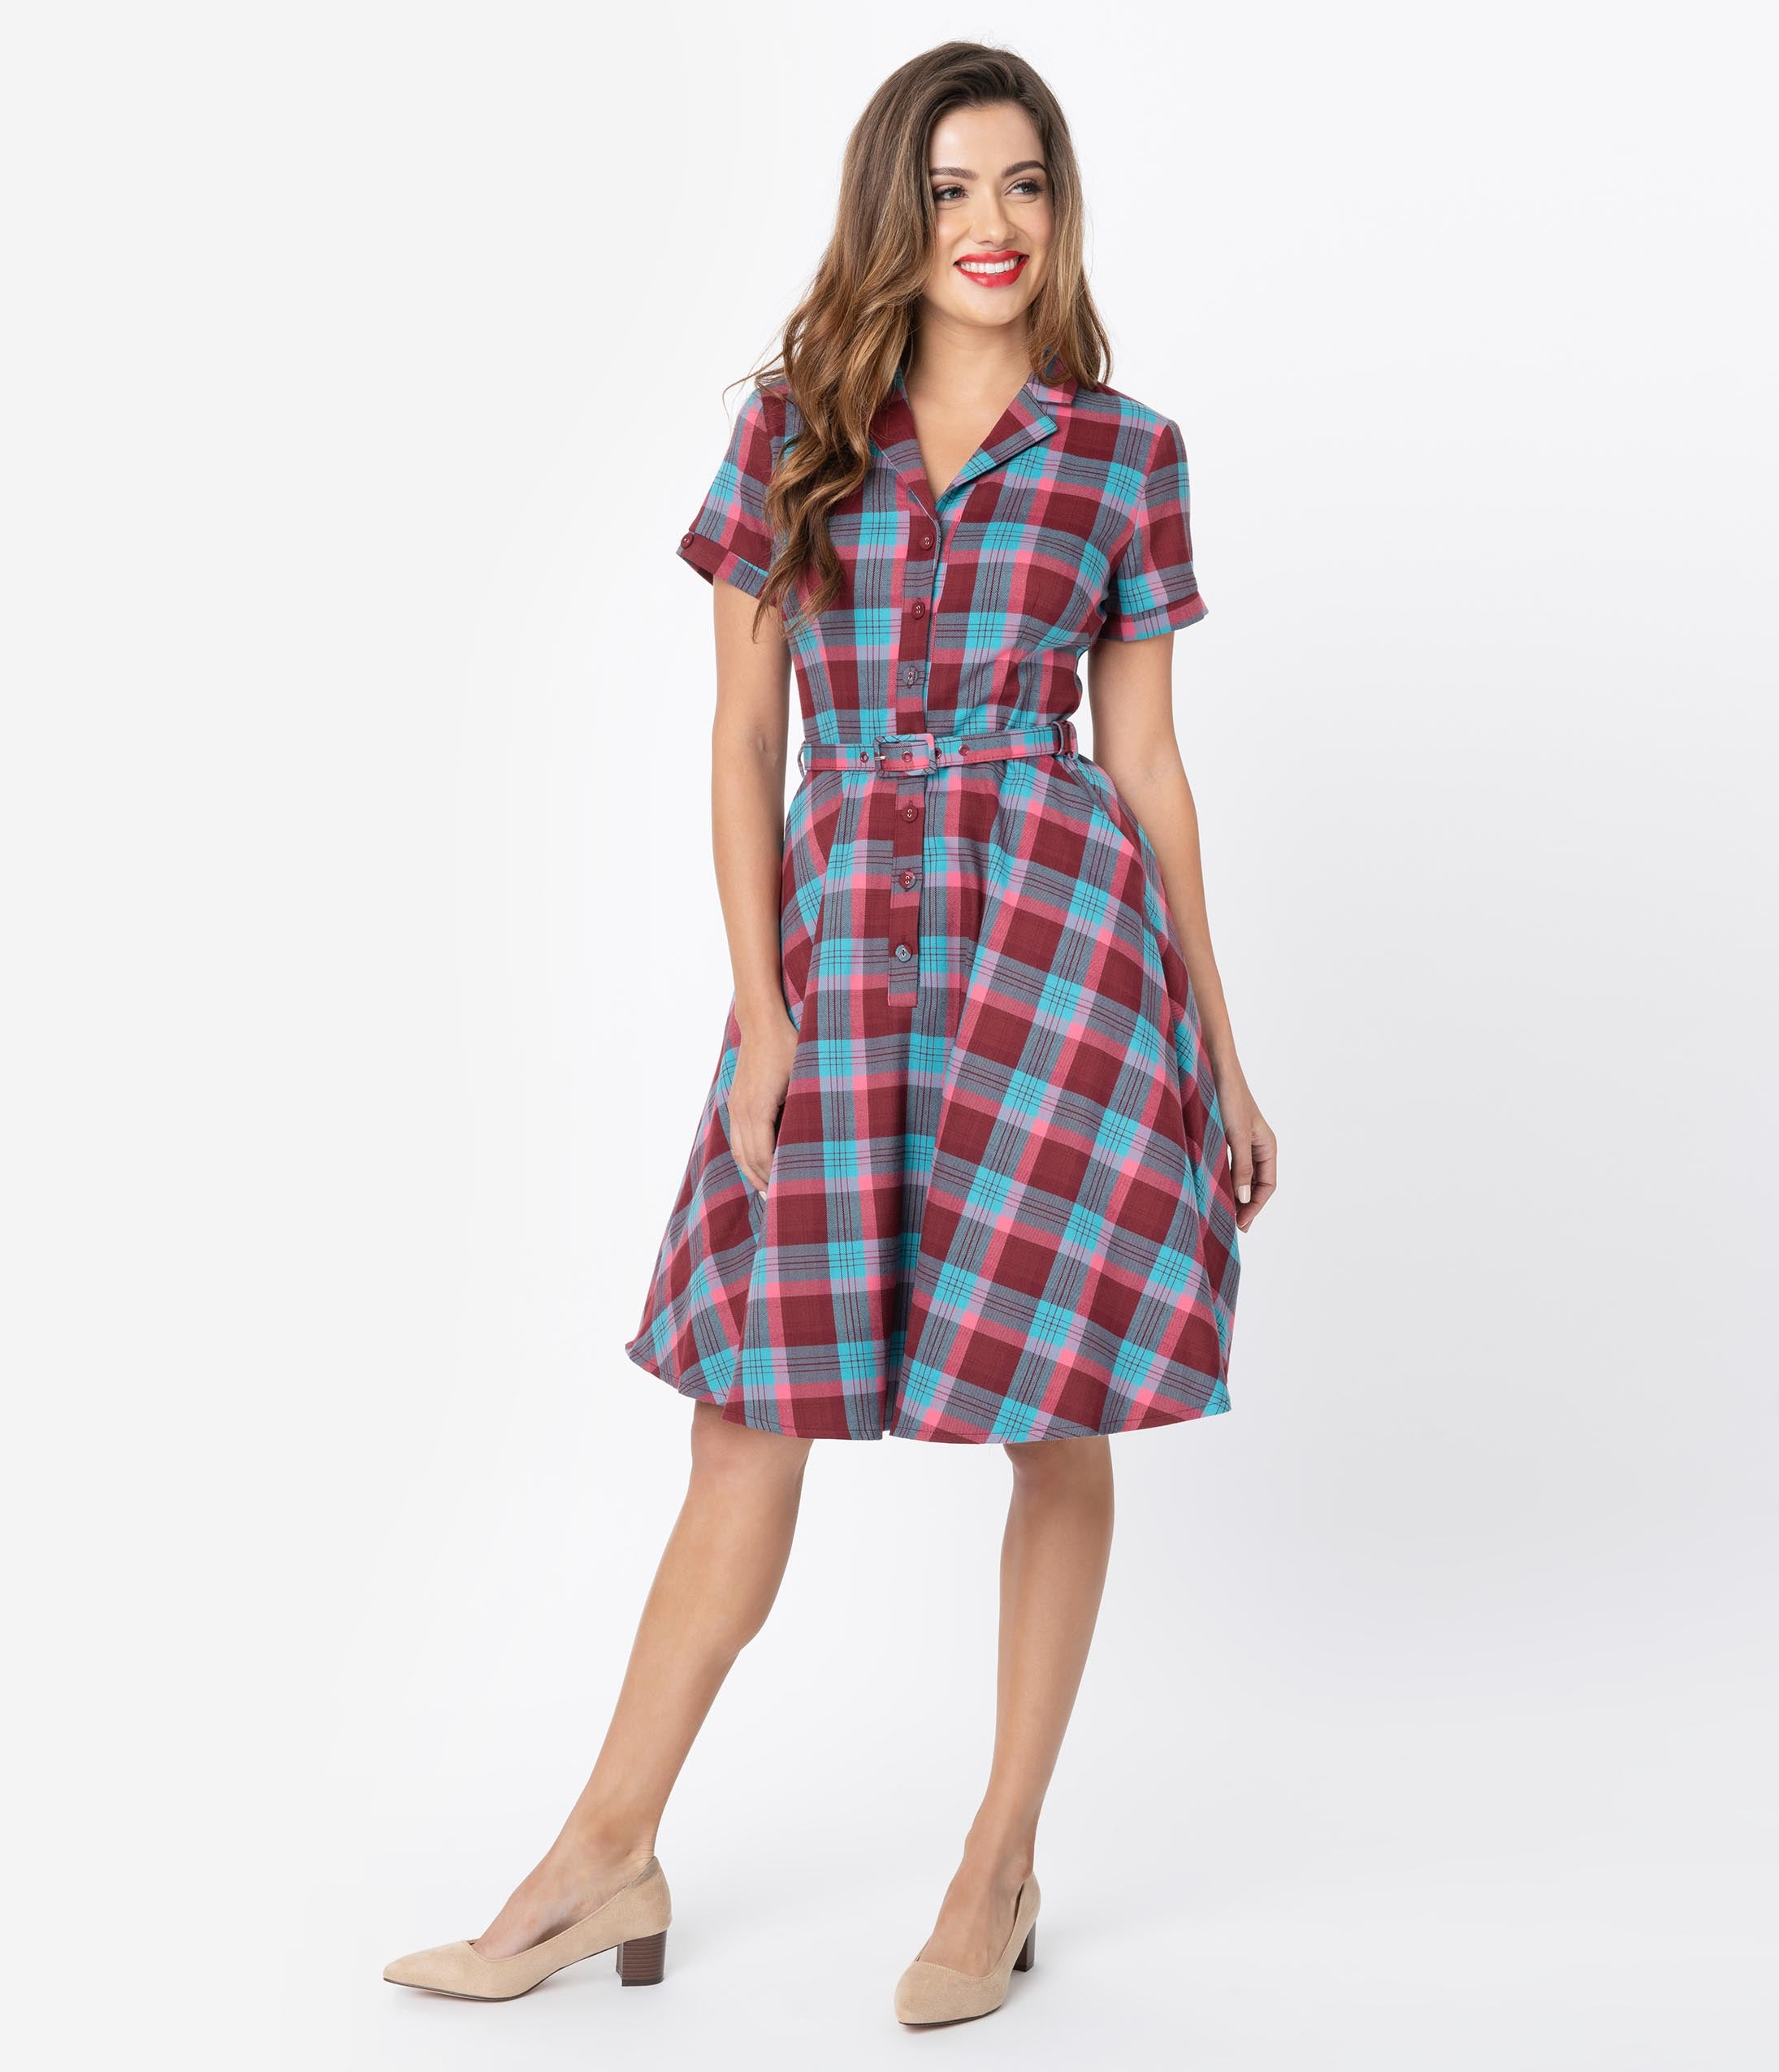 Fifties Dresses : 1950s Style Swing to Wiggle Dresses Voodoo Vixen 1950S Burgundy  Blue Plaid Button Up Swing Dress $88.00 AT vintagedancer.com